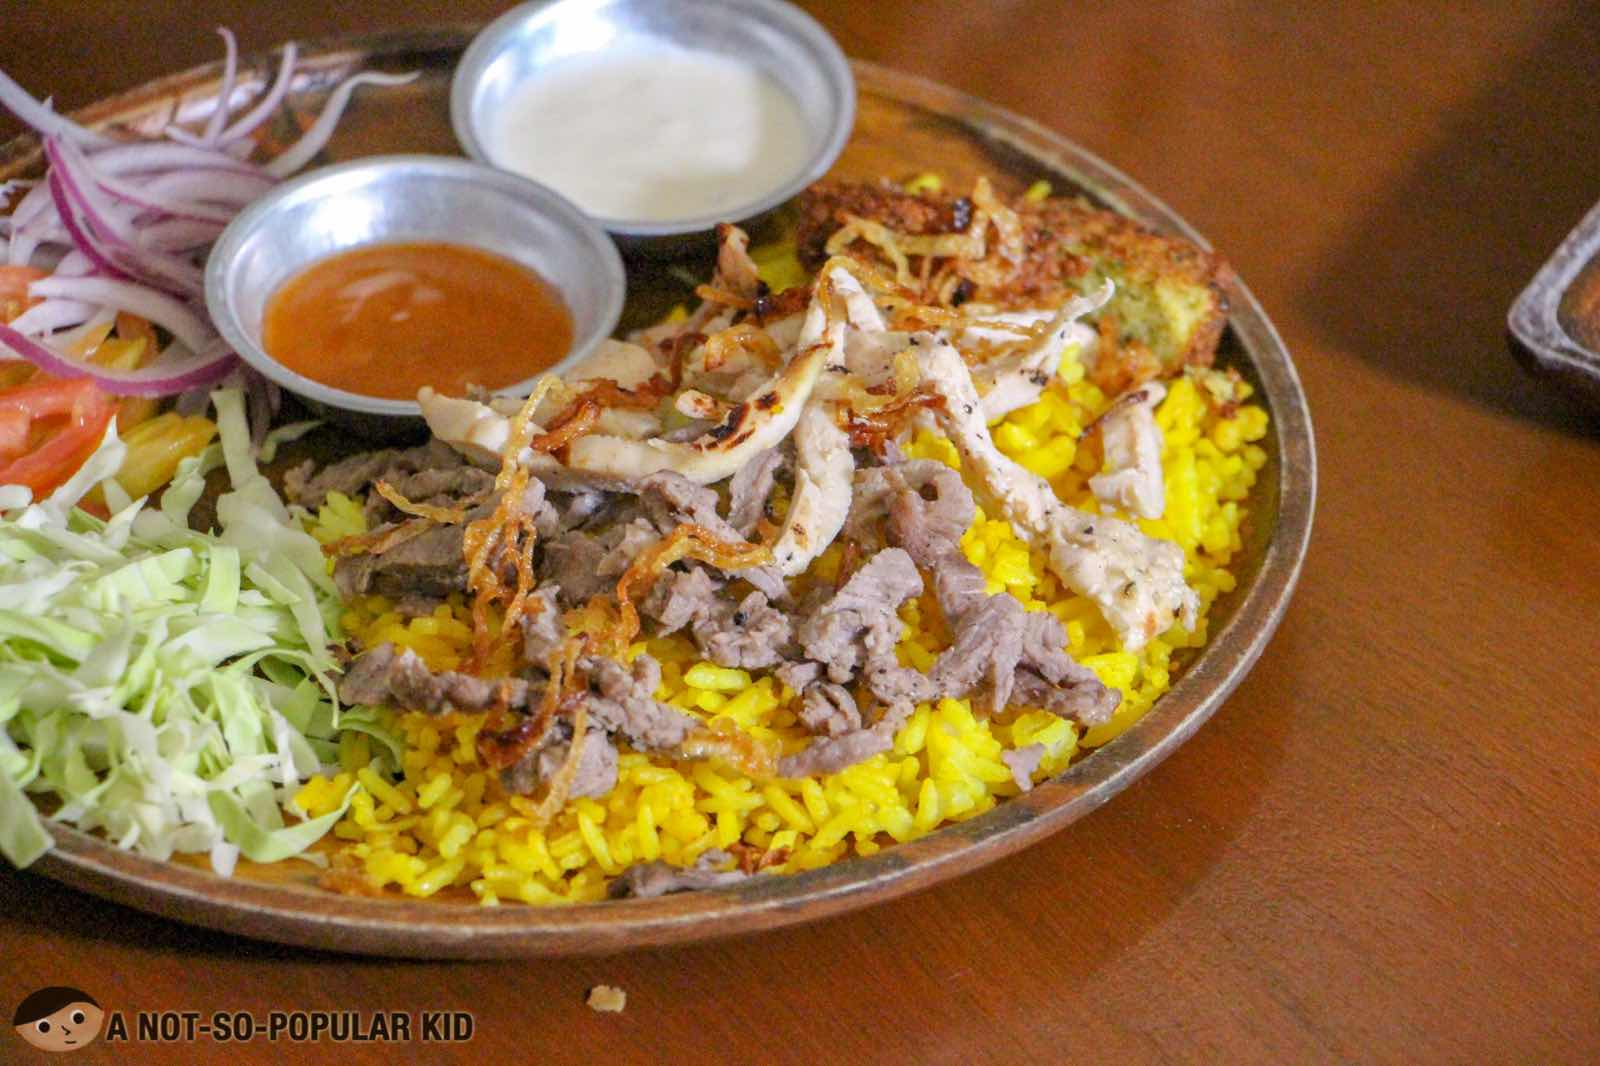 Shawarma Turmeric Rice Plate Duo of Kite Kebab Bar